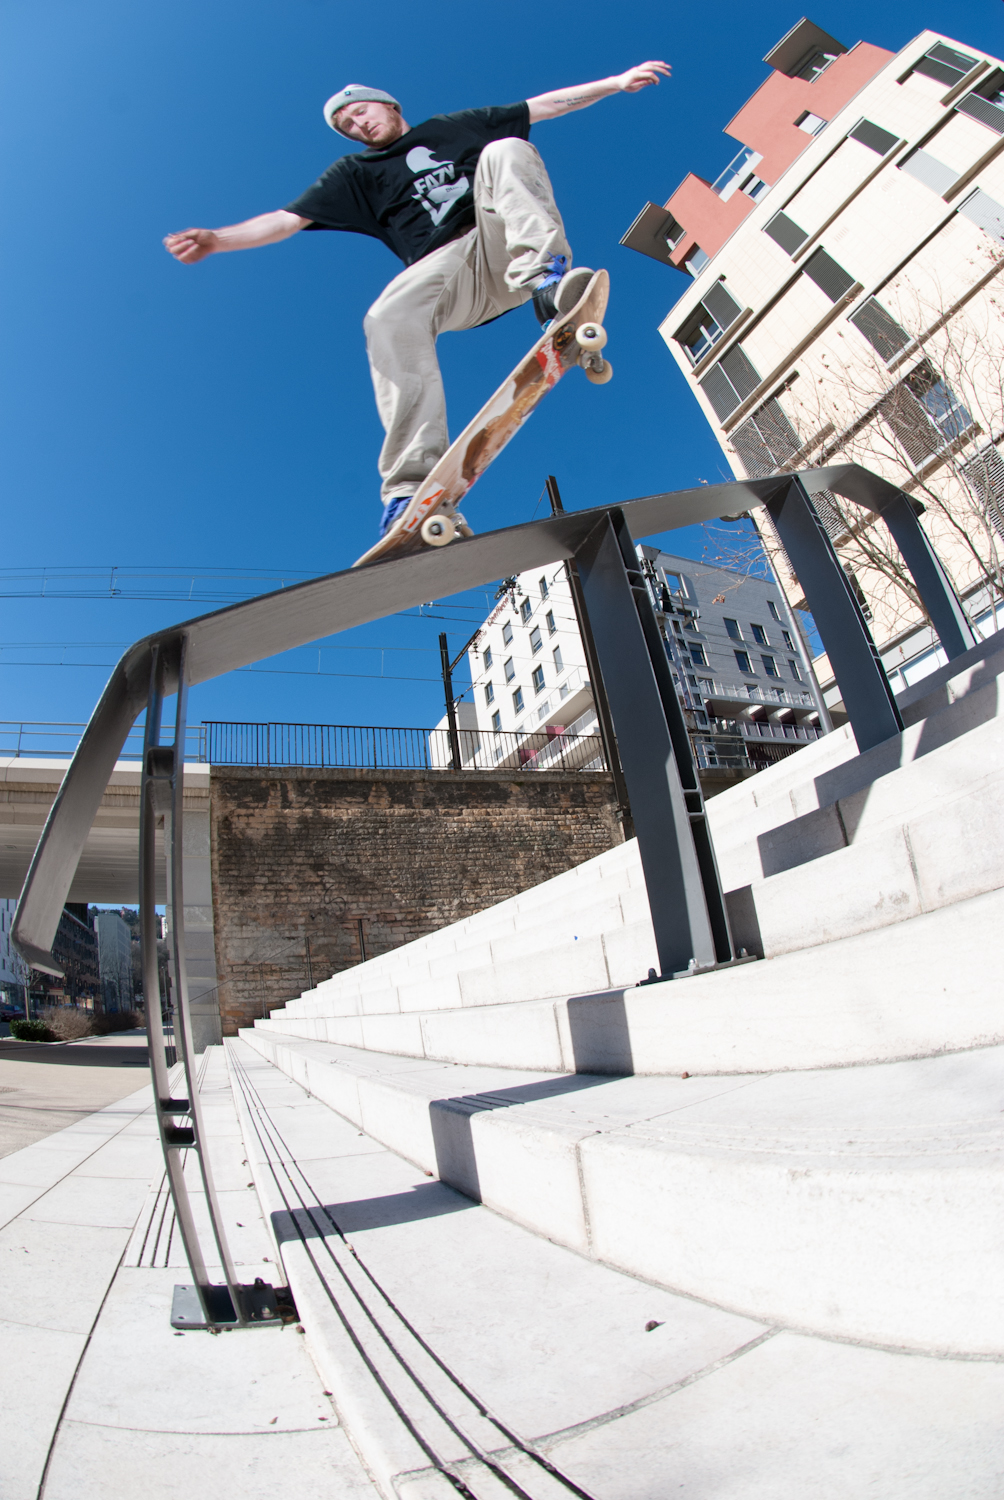 Danny Jones - Crook  - Lyon